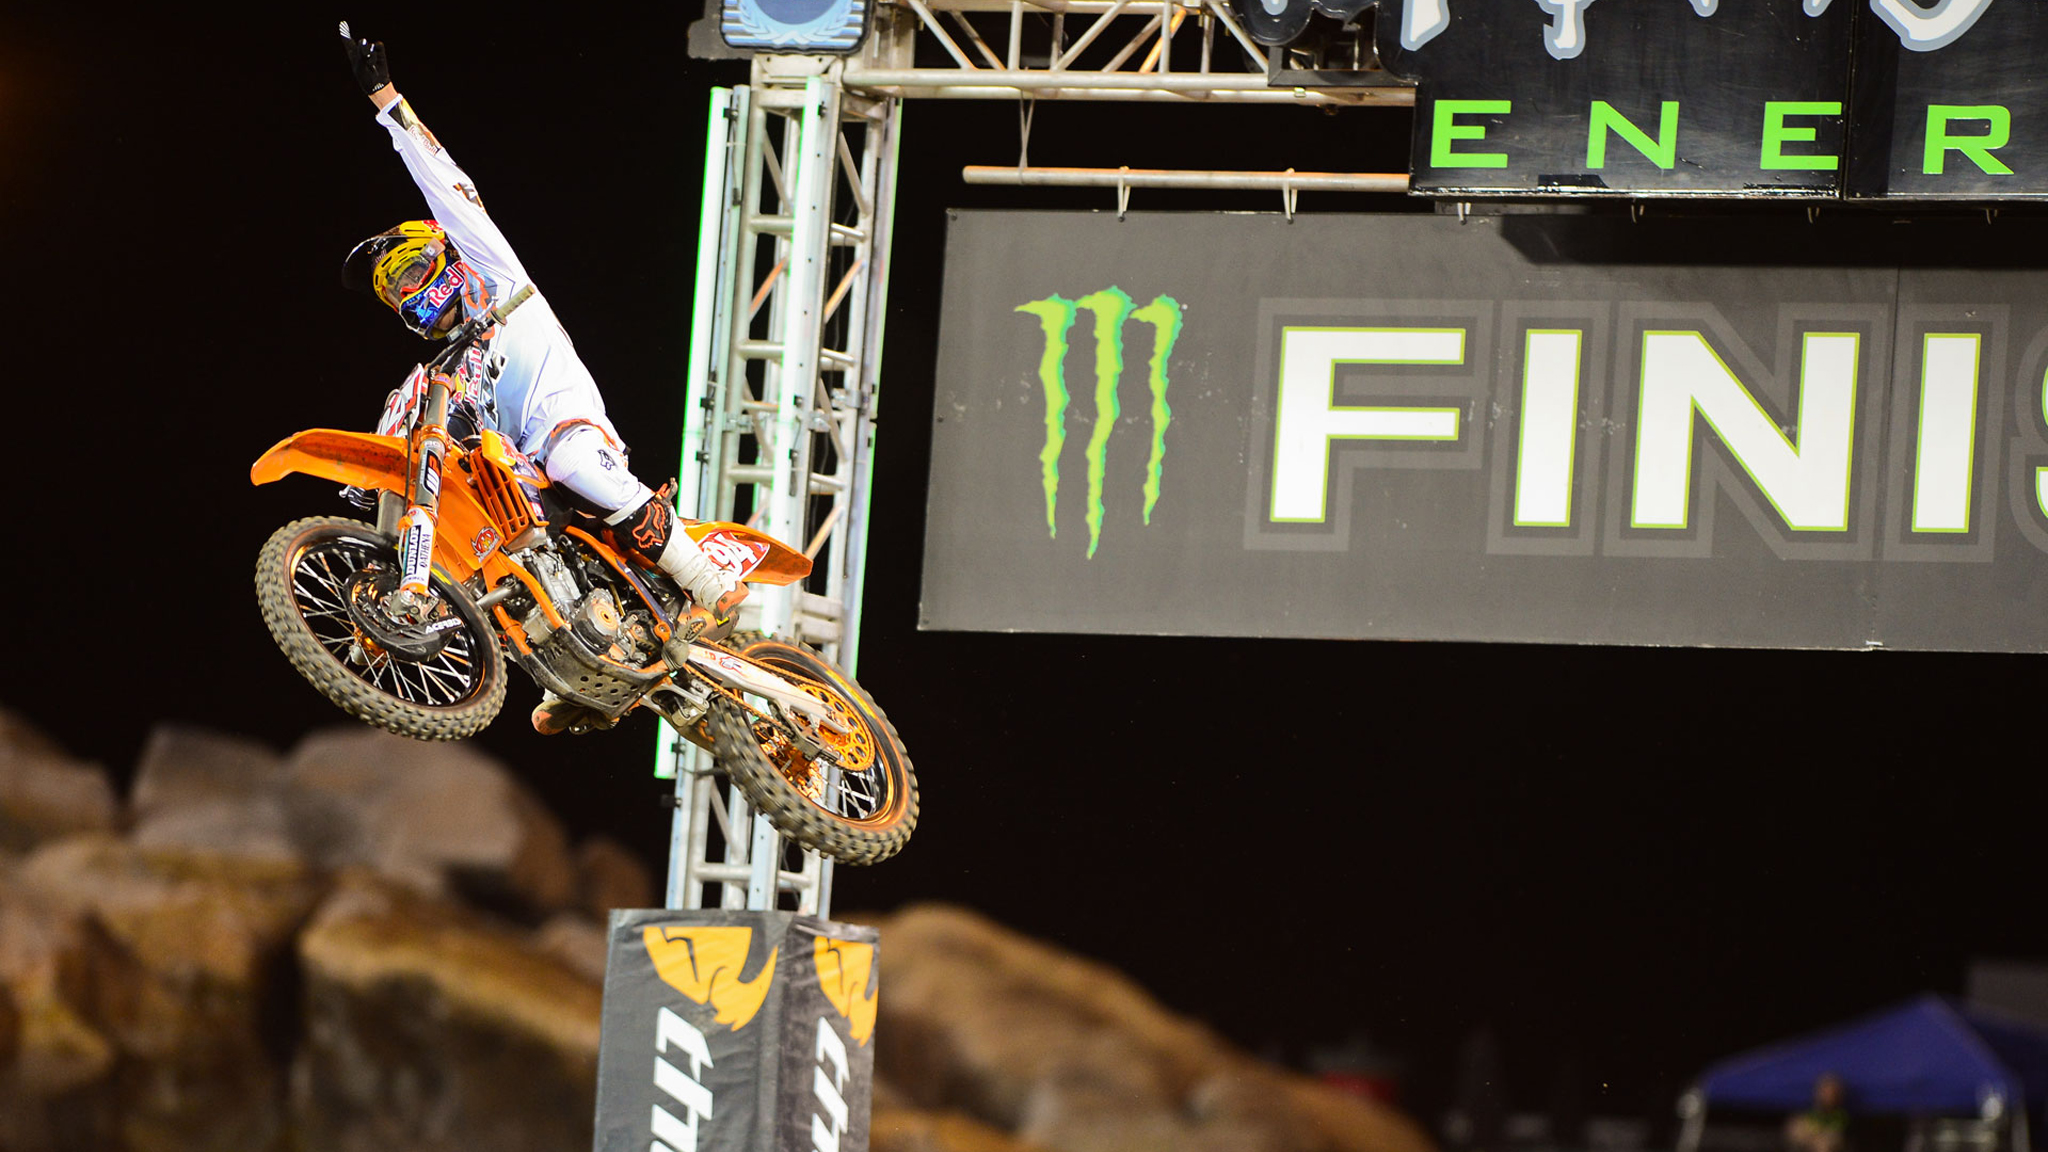 Ryan Dungey earned his first Supercross win of the season in Anaheim.